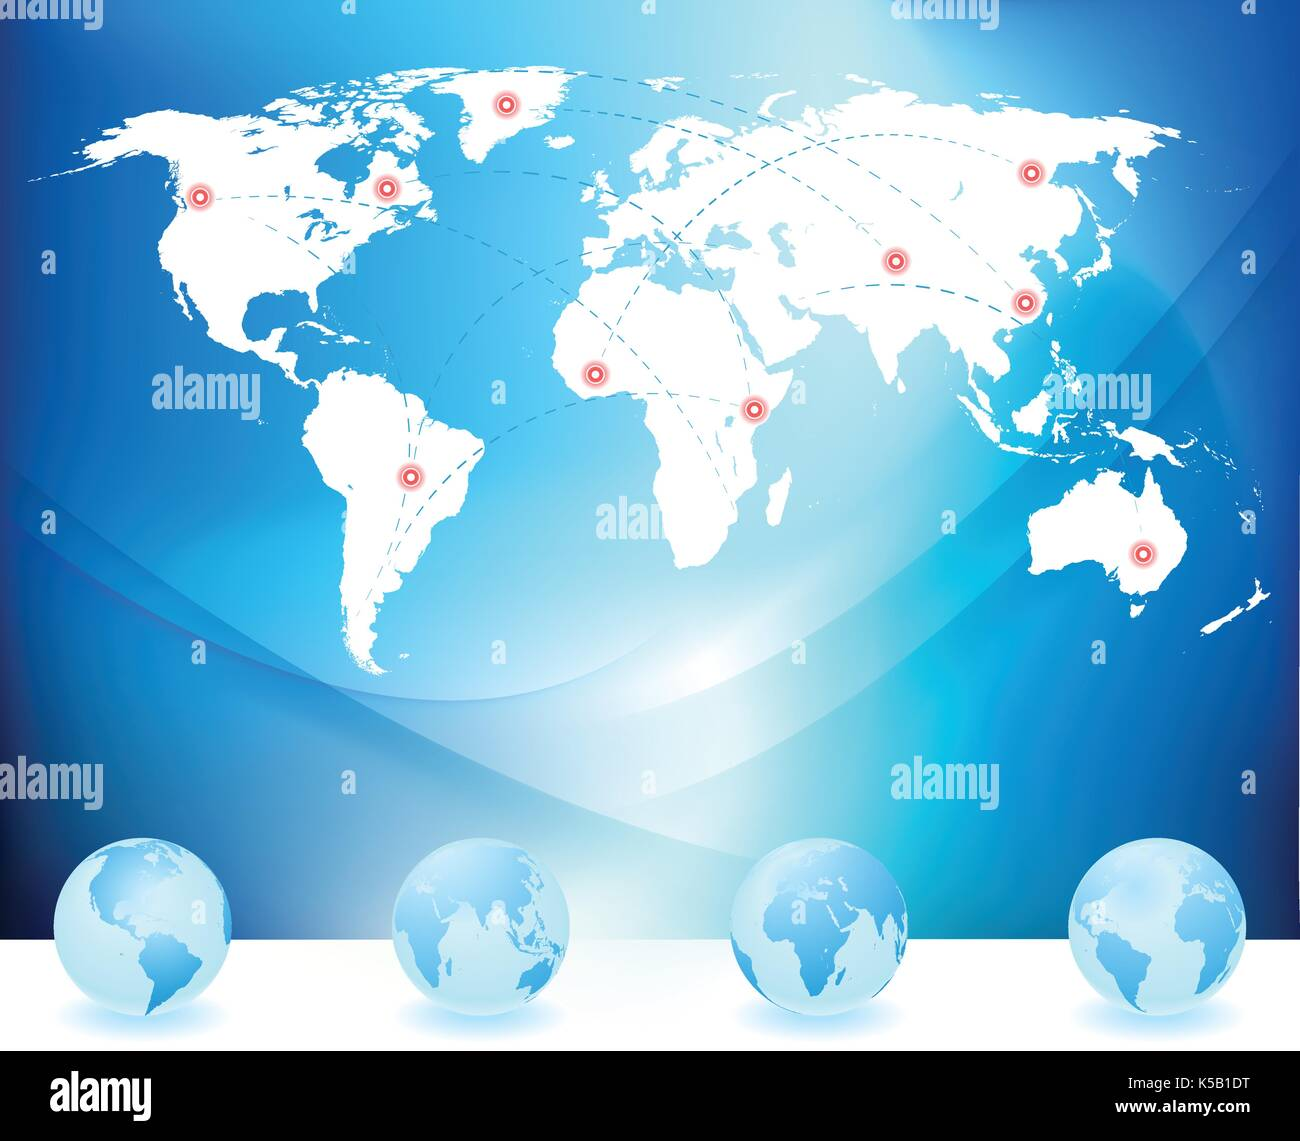 World map and globes with comp Stock Vector Art ... on t and o map, maps and tools, raised-relief map, maps and tables, topographic map, maps and directions, maps and travel, maps and compasses, maps and diagrams, maps and books, maps and models, maps and food, maps and scales, maps and water, maps and telescopes, maps and pins, maps and atlases, maps and flags, maps and graphs, maps and charts, world map, maps and calendars, maps and prints, maps and gps,